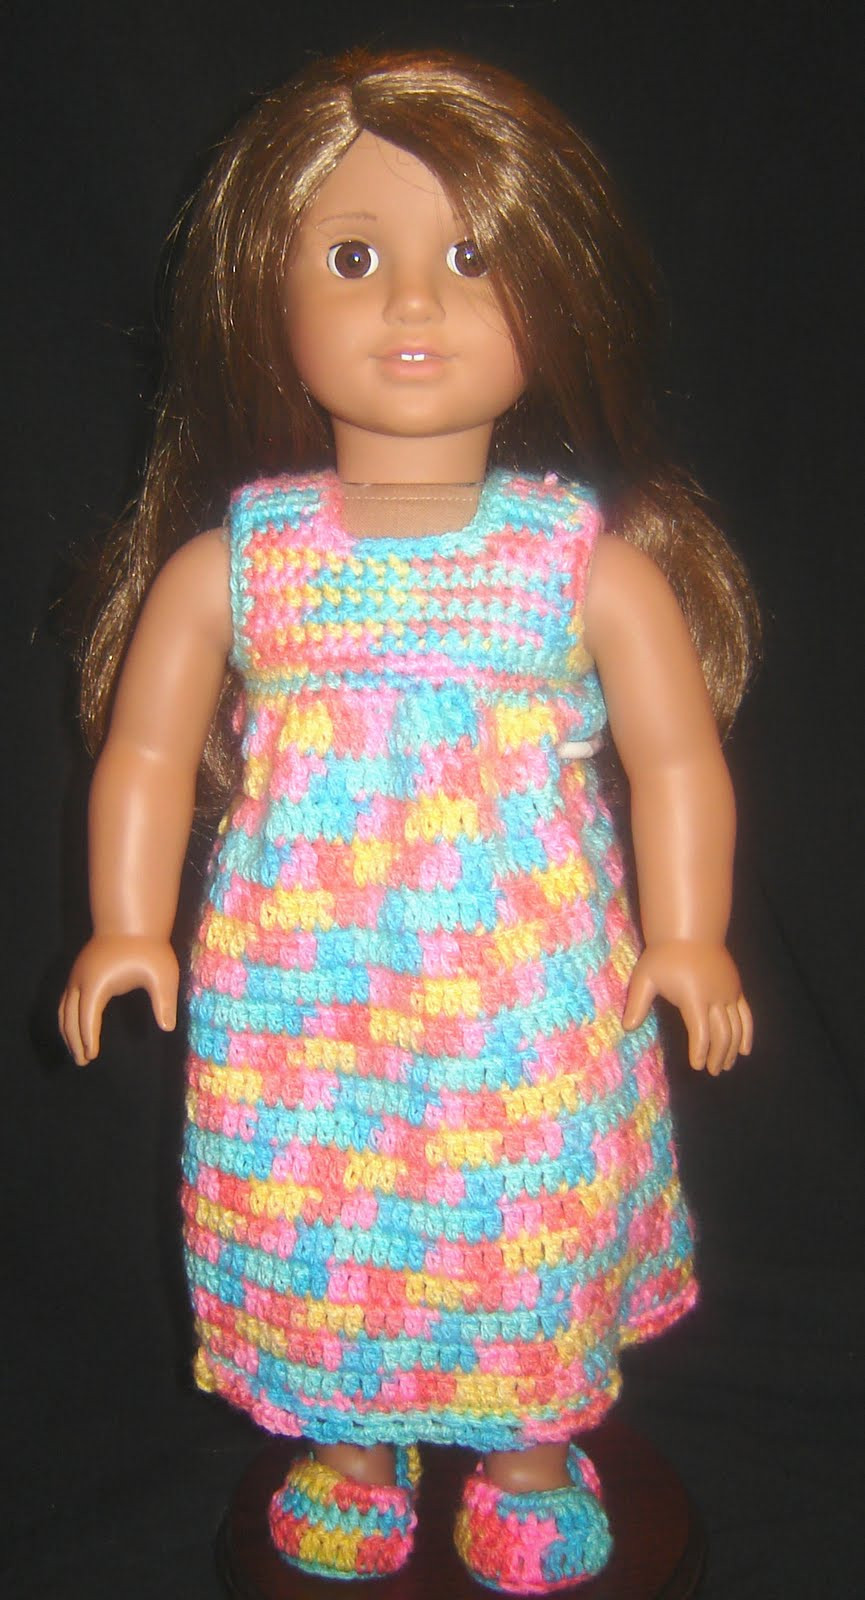 "New Bizzy Crochet Nightie Robe & Slippers 18"" Doll Clothes Crochet Clothing Patterns Of Amazing 44 Pics Crochet Clothing Patterns"